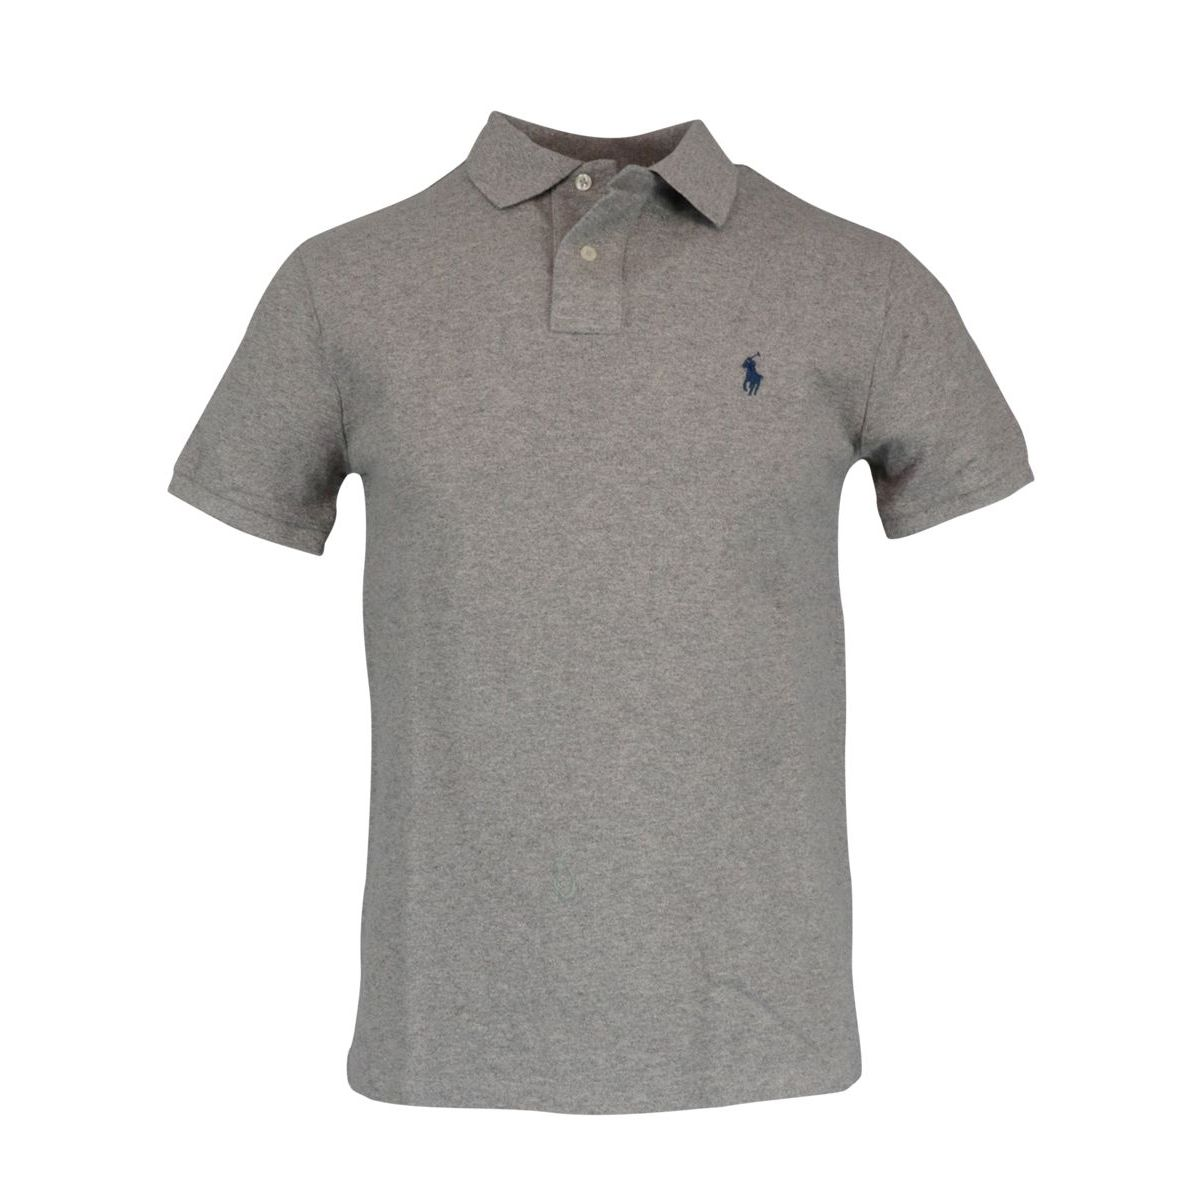 Cotton polo shirt with two buttons Custom Fit Grey Polo Ralph Lauren